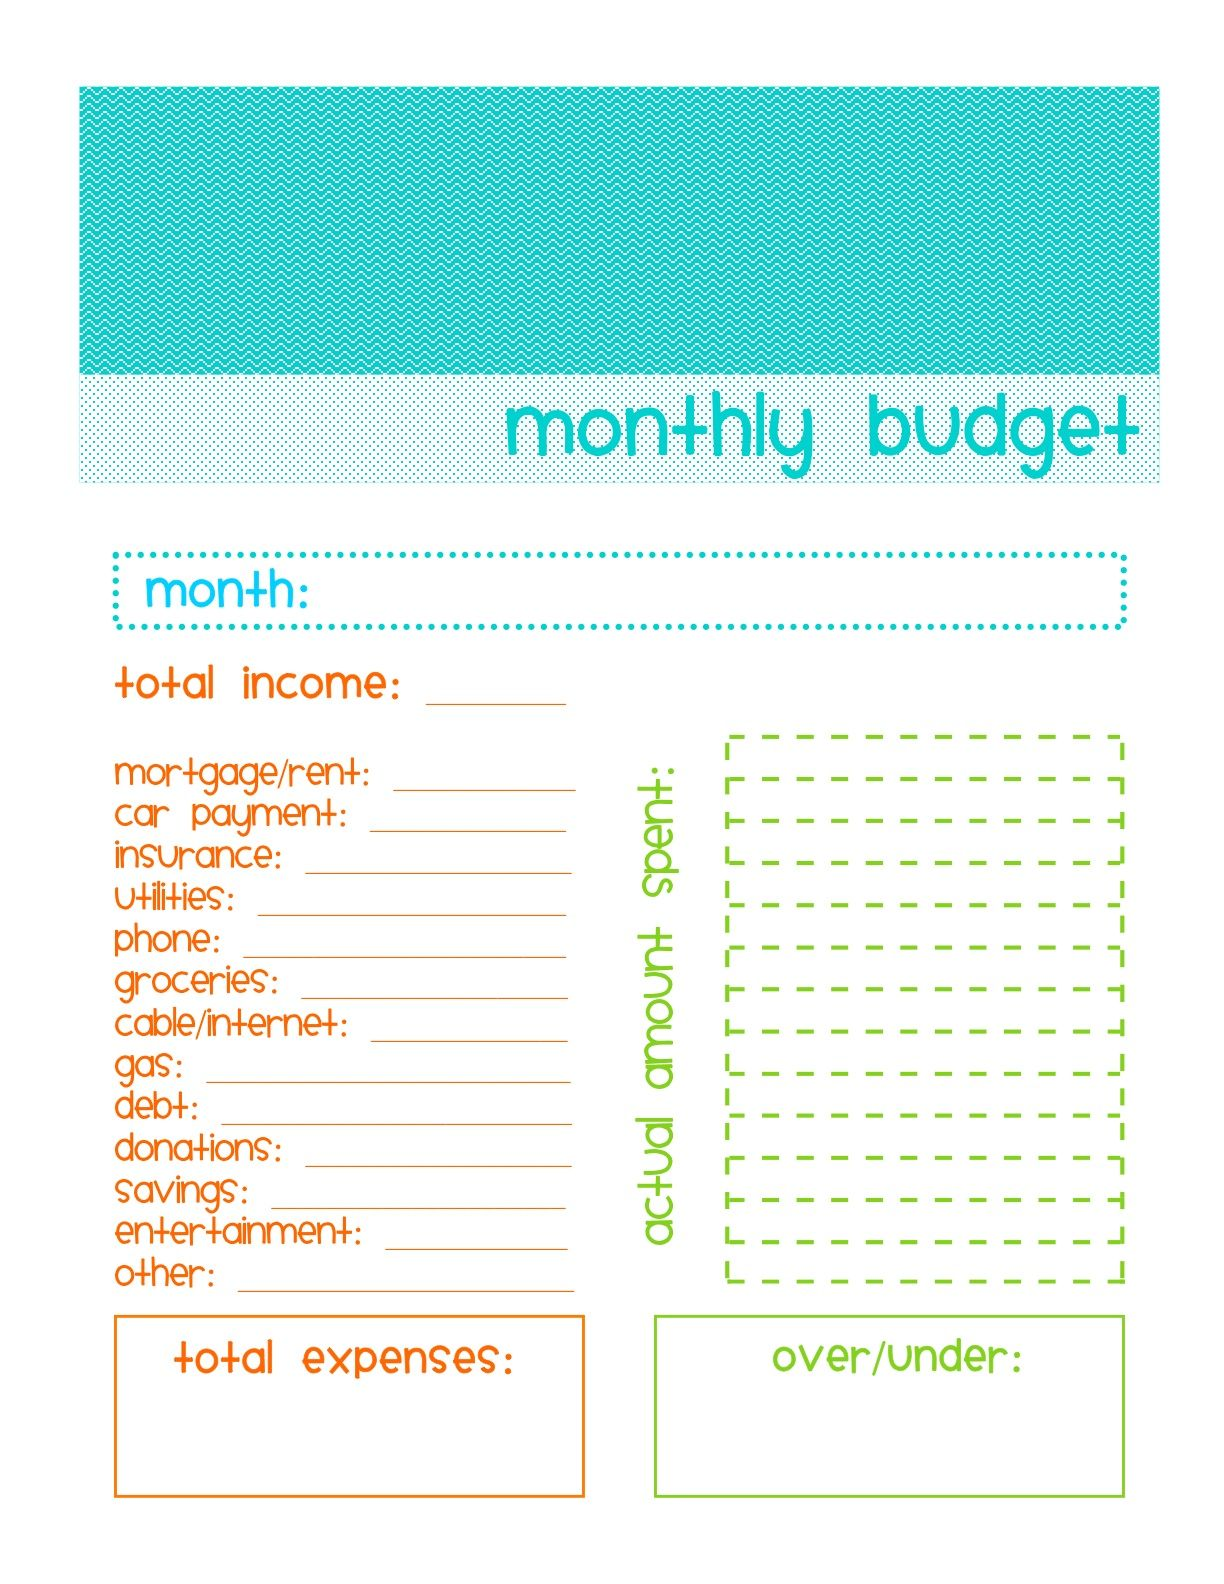 Worksheets Simple Budget Worksheet simple budget template printable join the conversation cancel free monthly budgeting worksheet